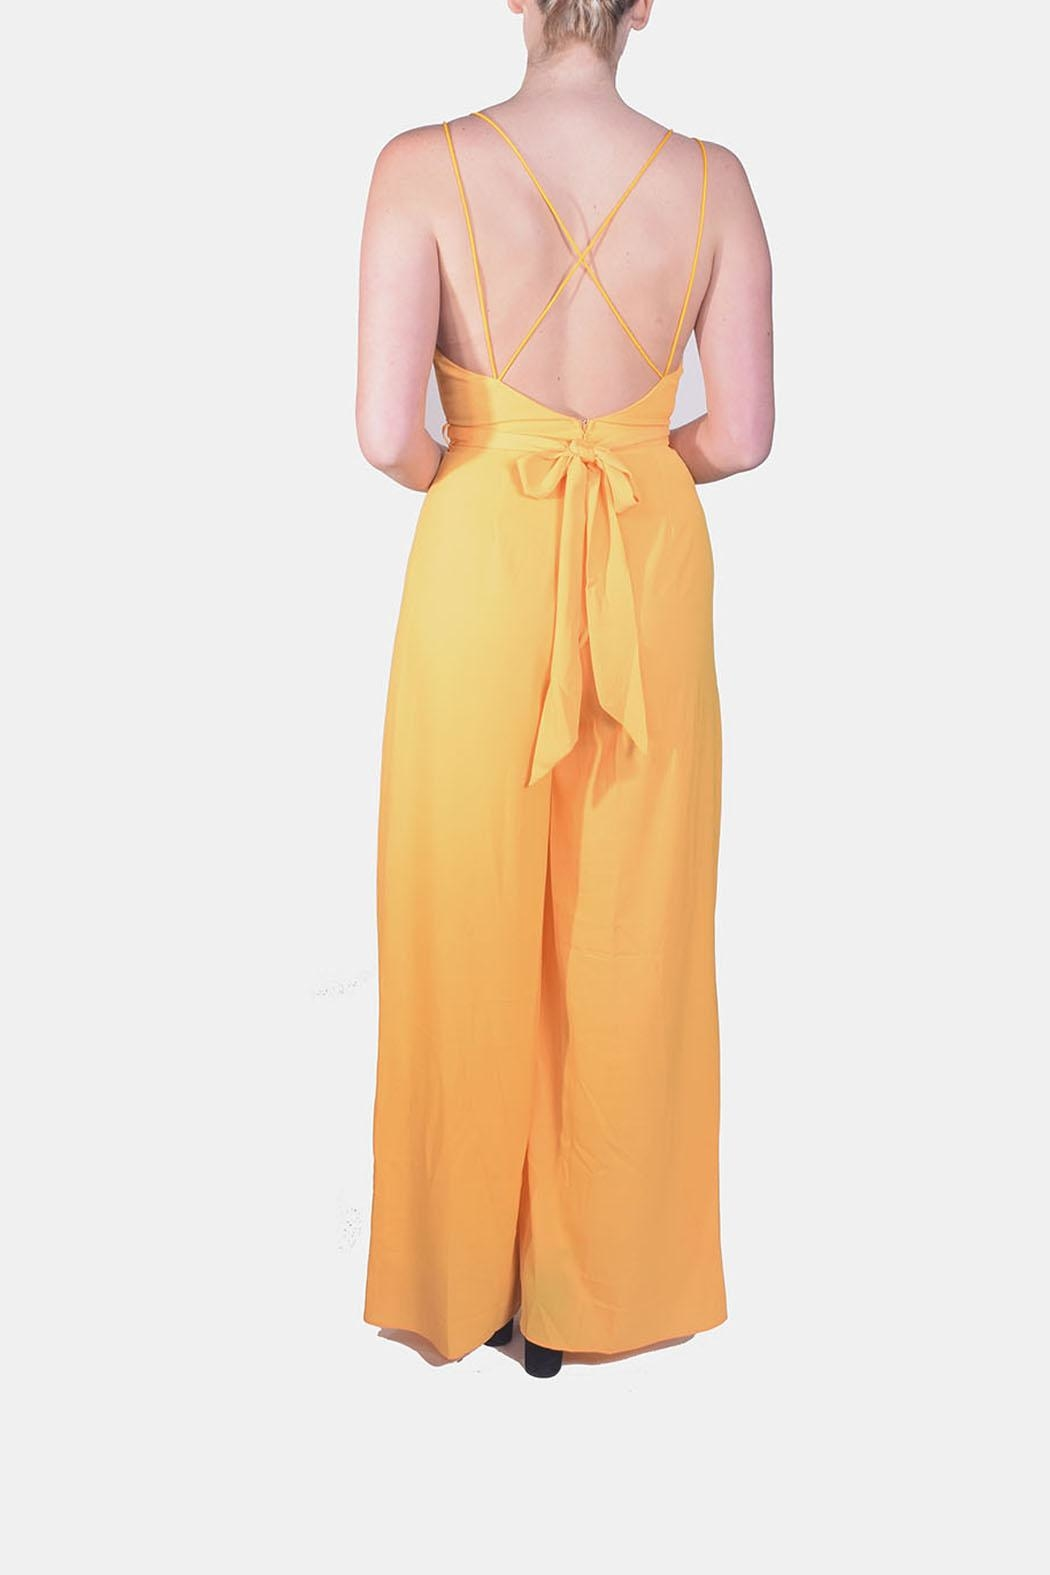 luxxel Dragonfly Open-Leg Jumpsuit - Side Cropped Image